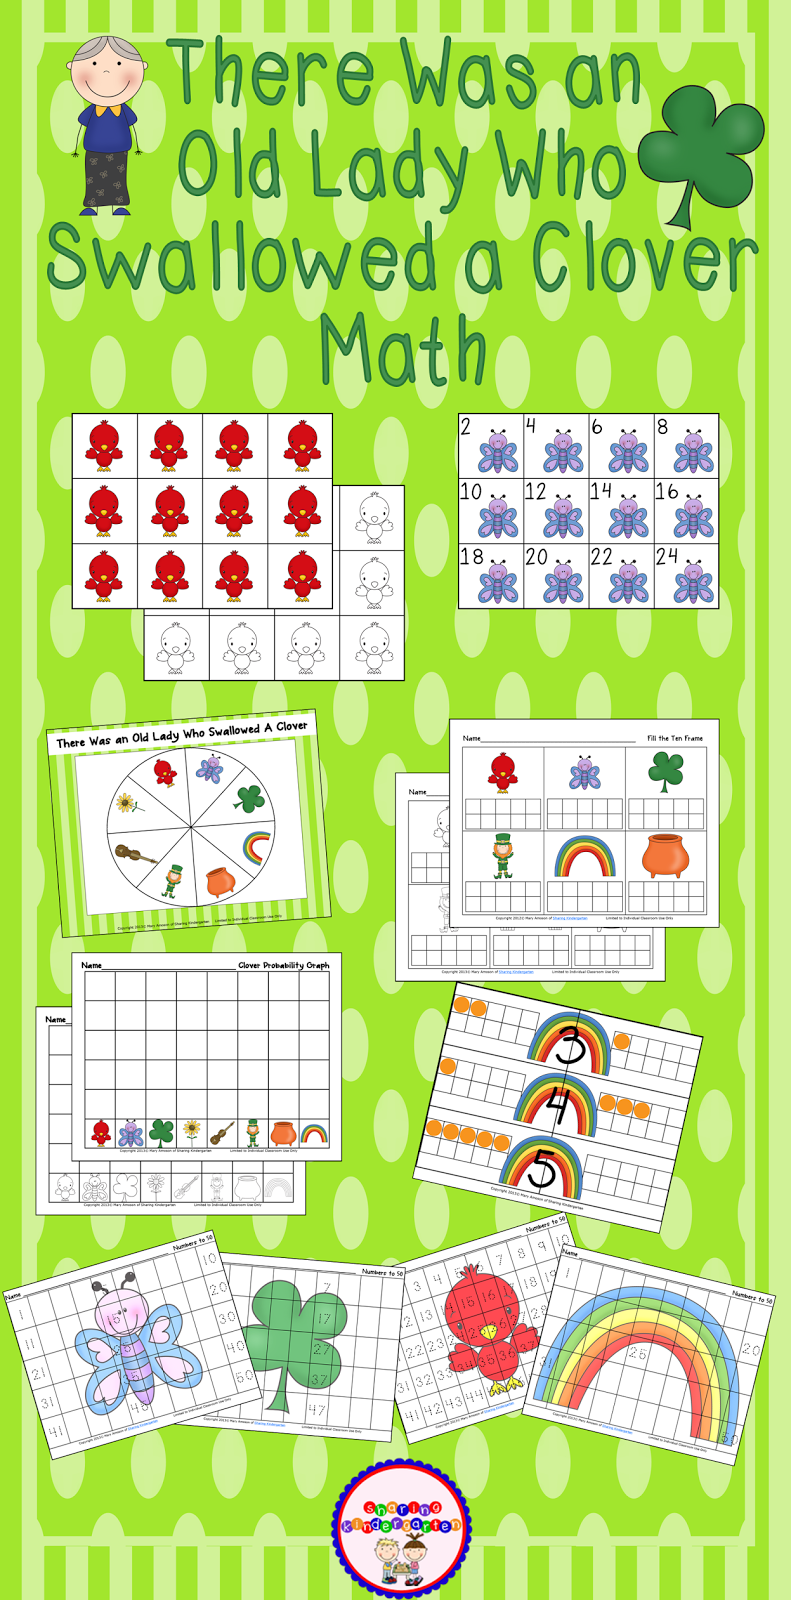 https://www.teacherspayteachers.com/Product/There-Was-an-Old-Lady-Who-Swallowed-a-Clover-Math-205822